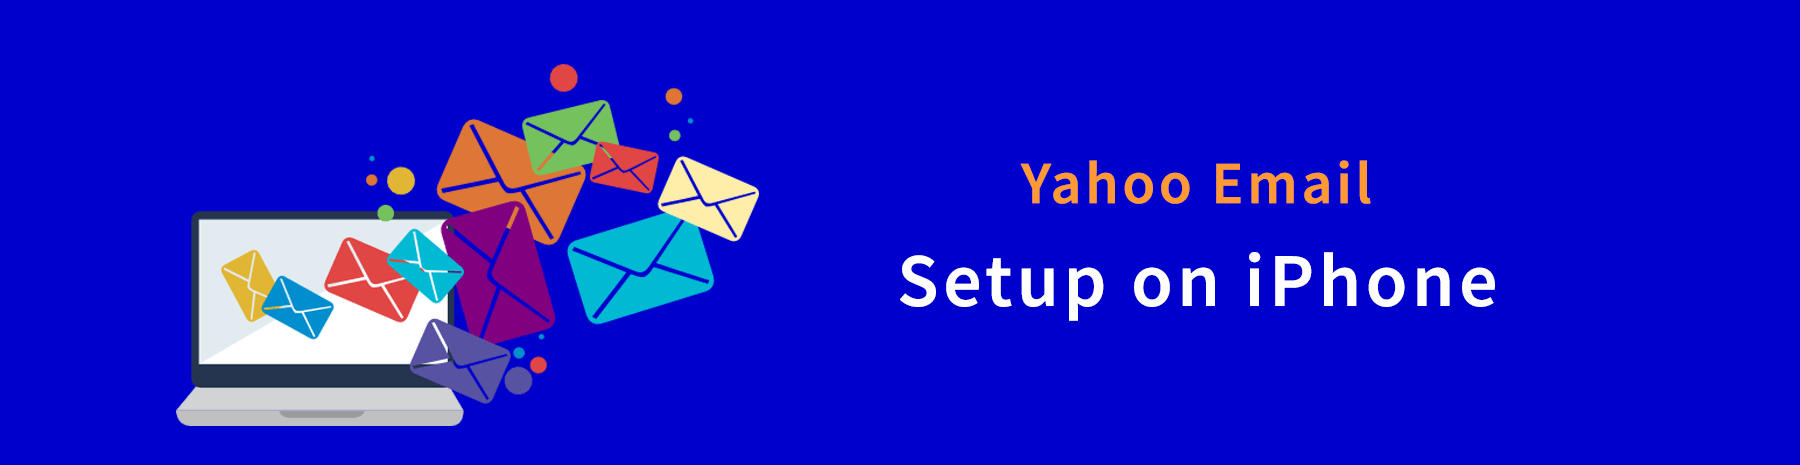 How-To-Set-Up-Yahoo-Mail-On-iPhone